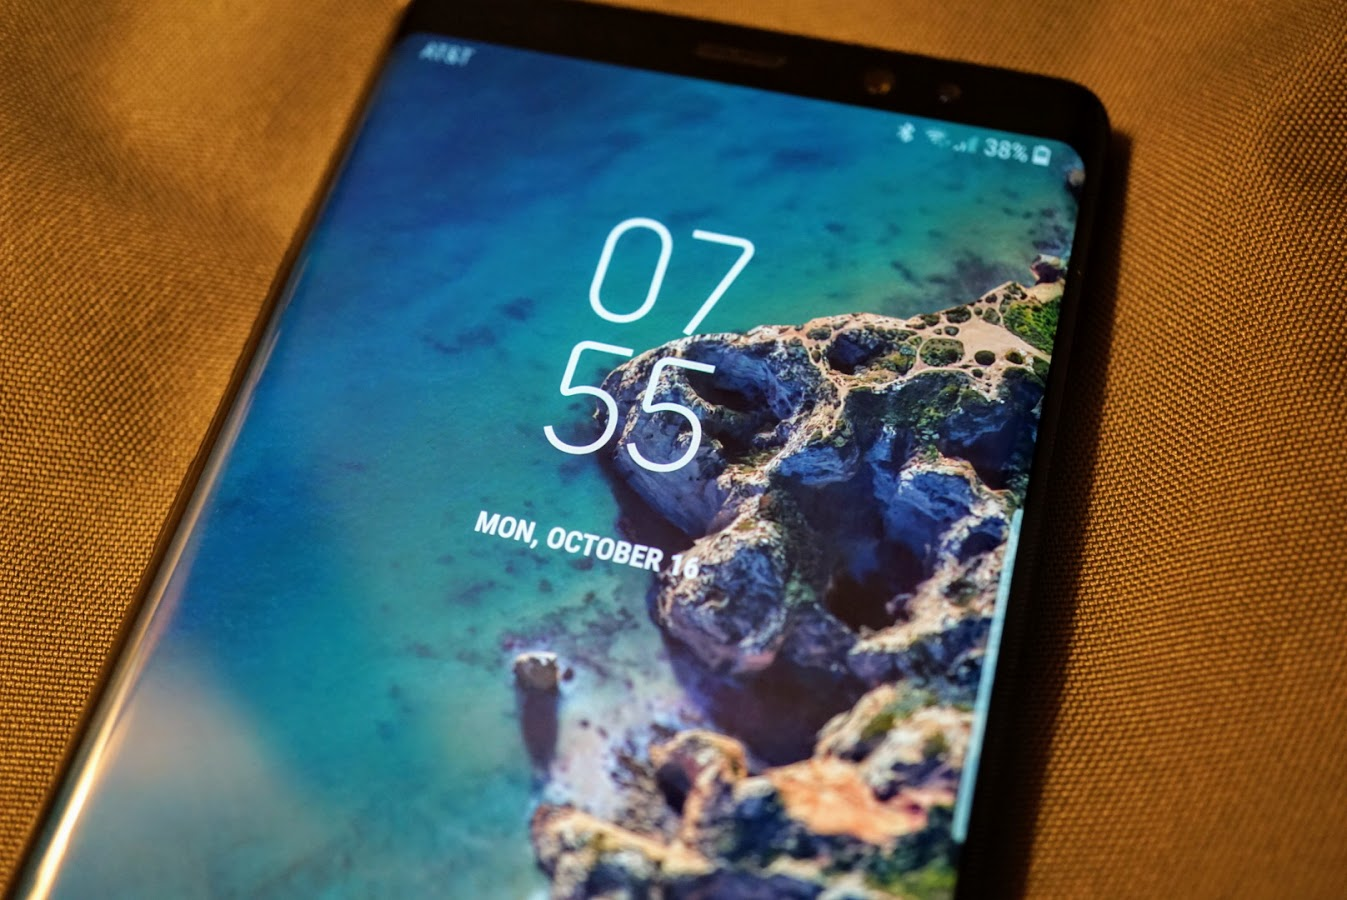 How To Install The Official Google Pixel 2 Live Wallpapers